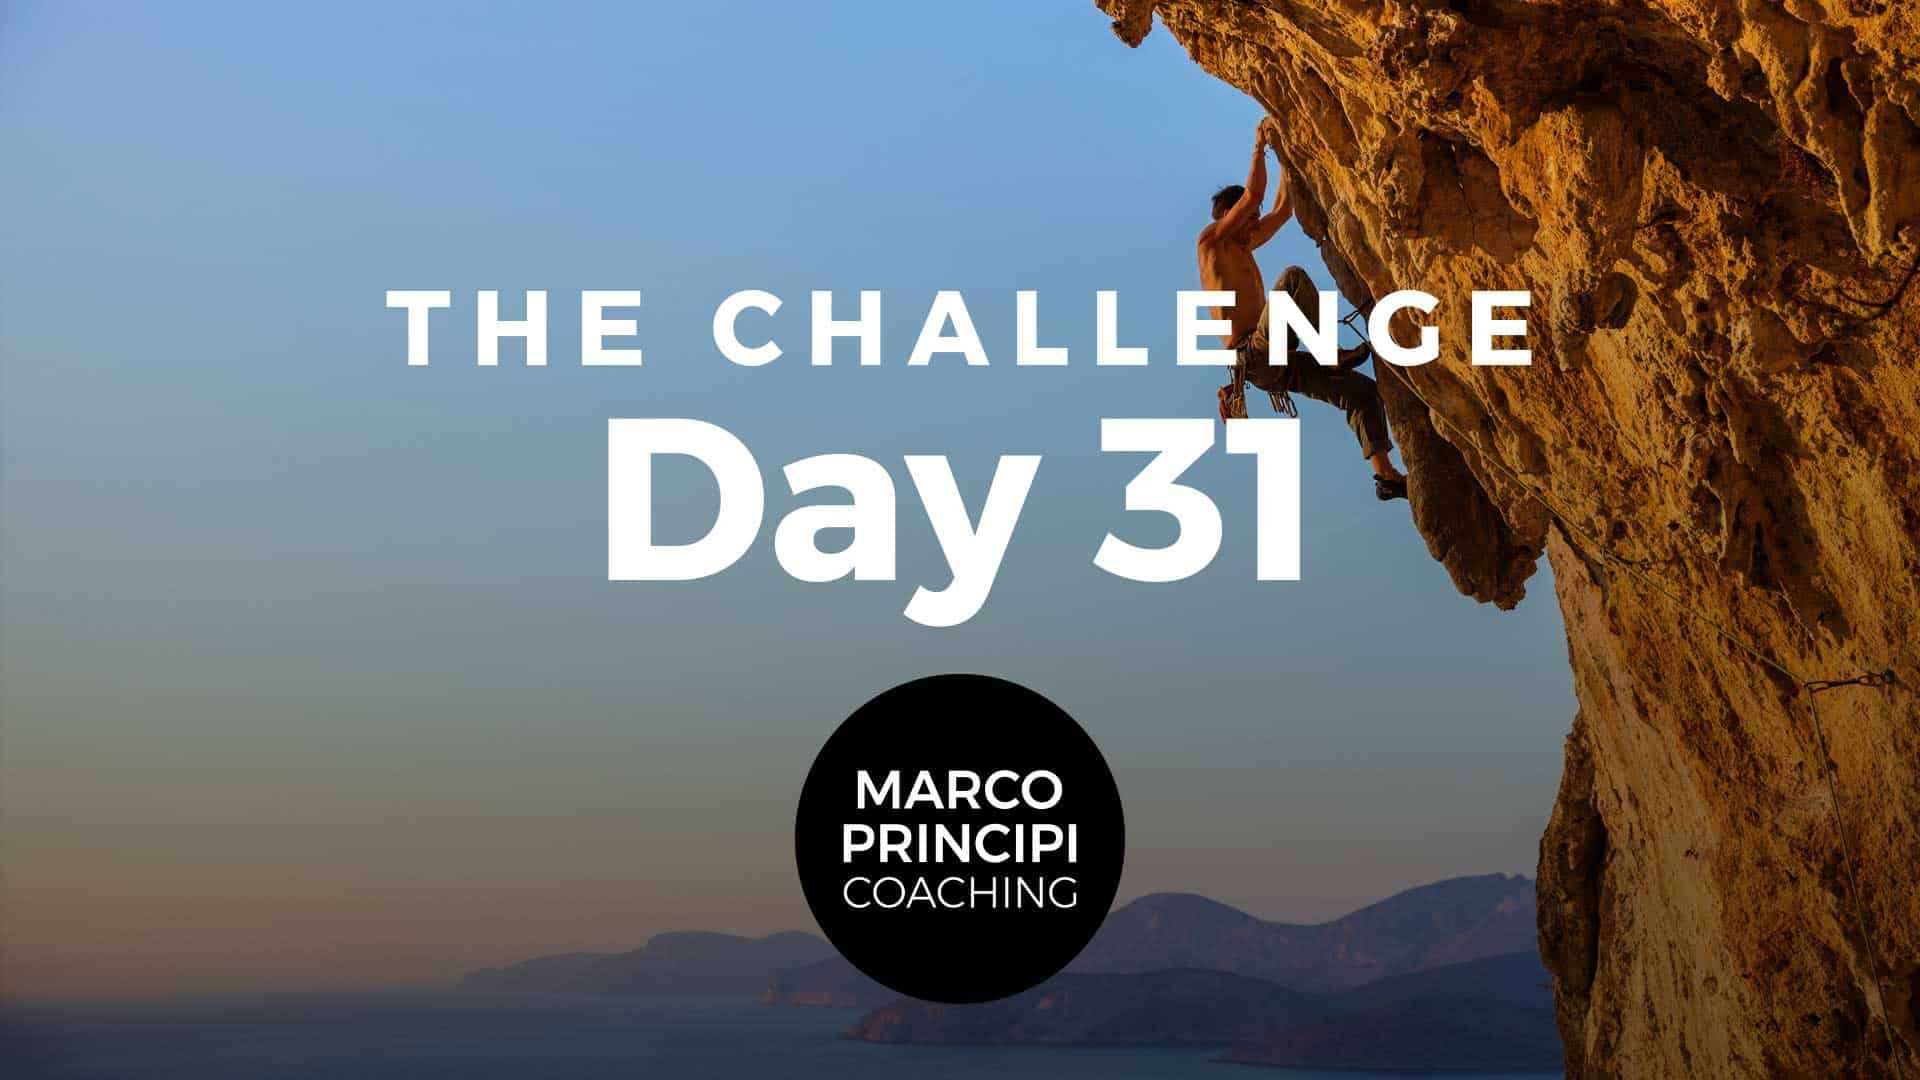 Marco Principi YT Cover The Challenge Day 031